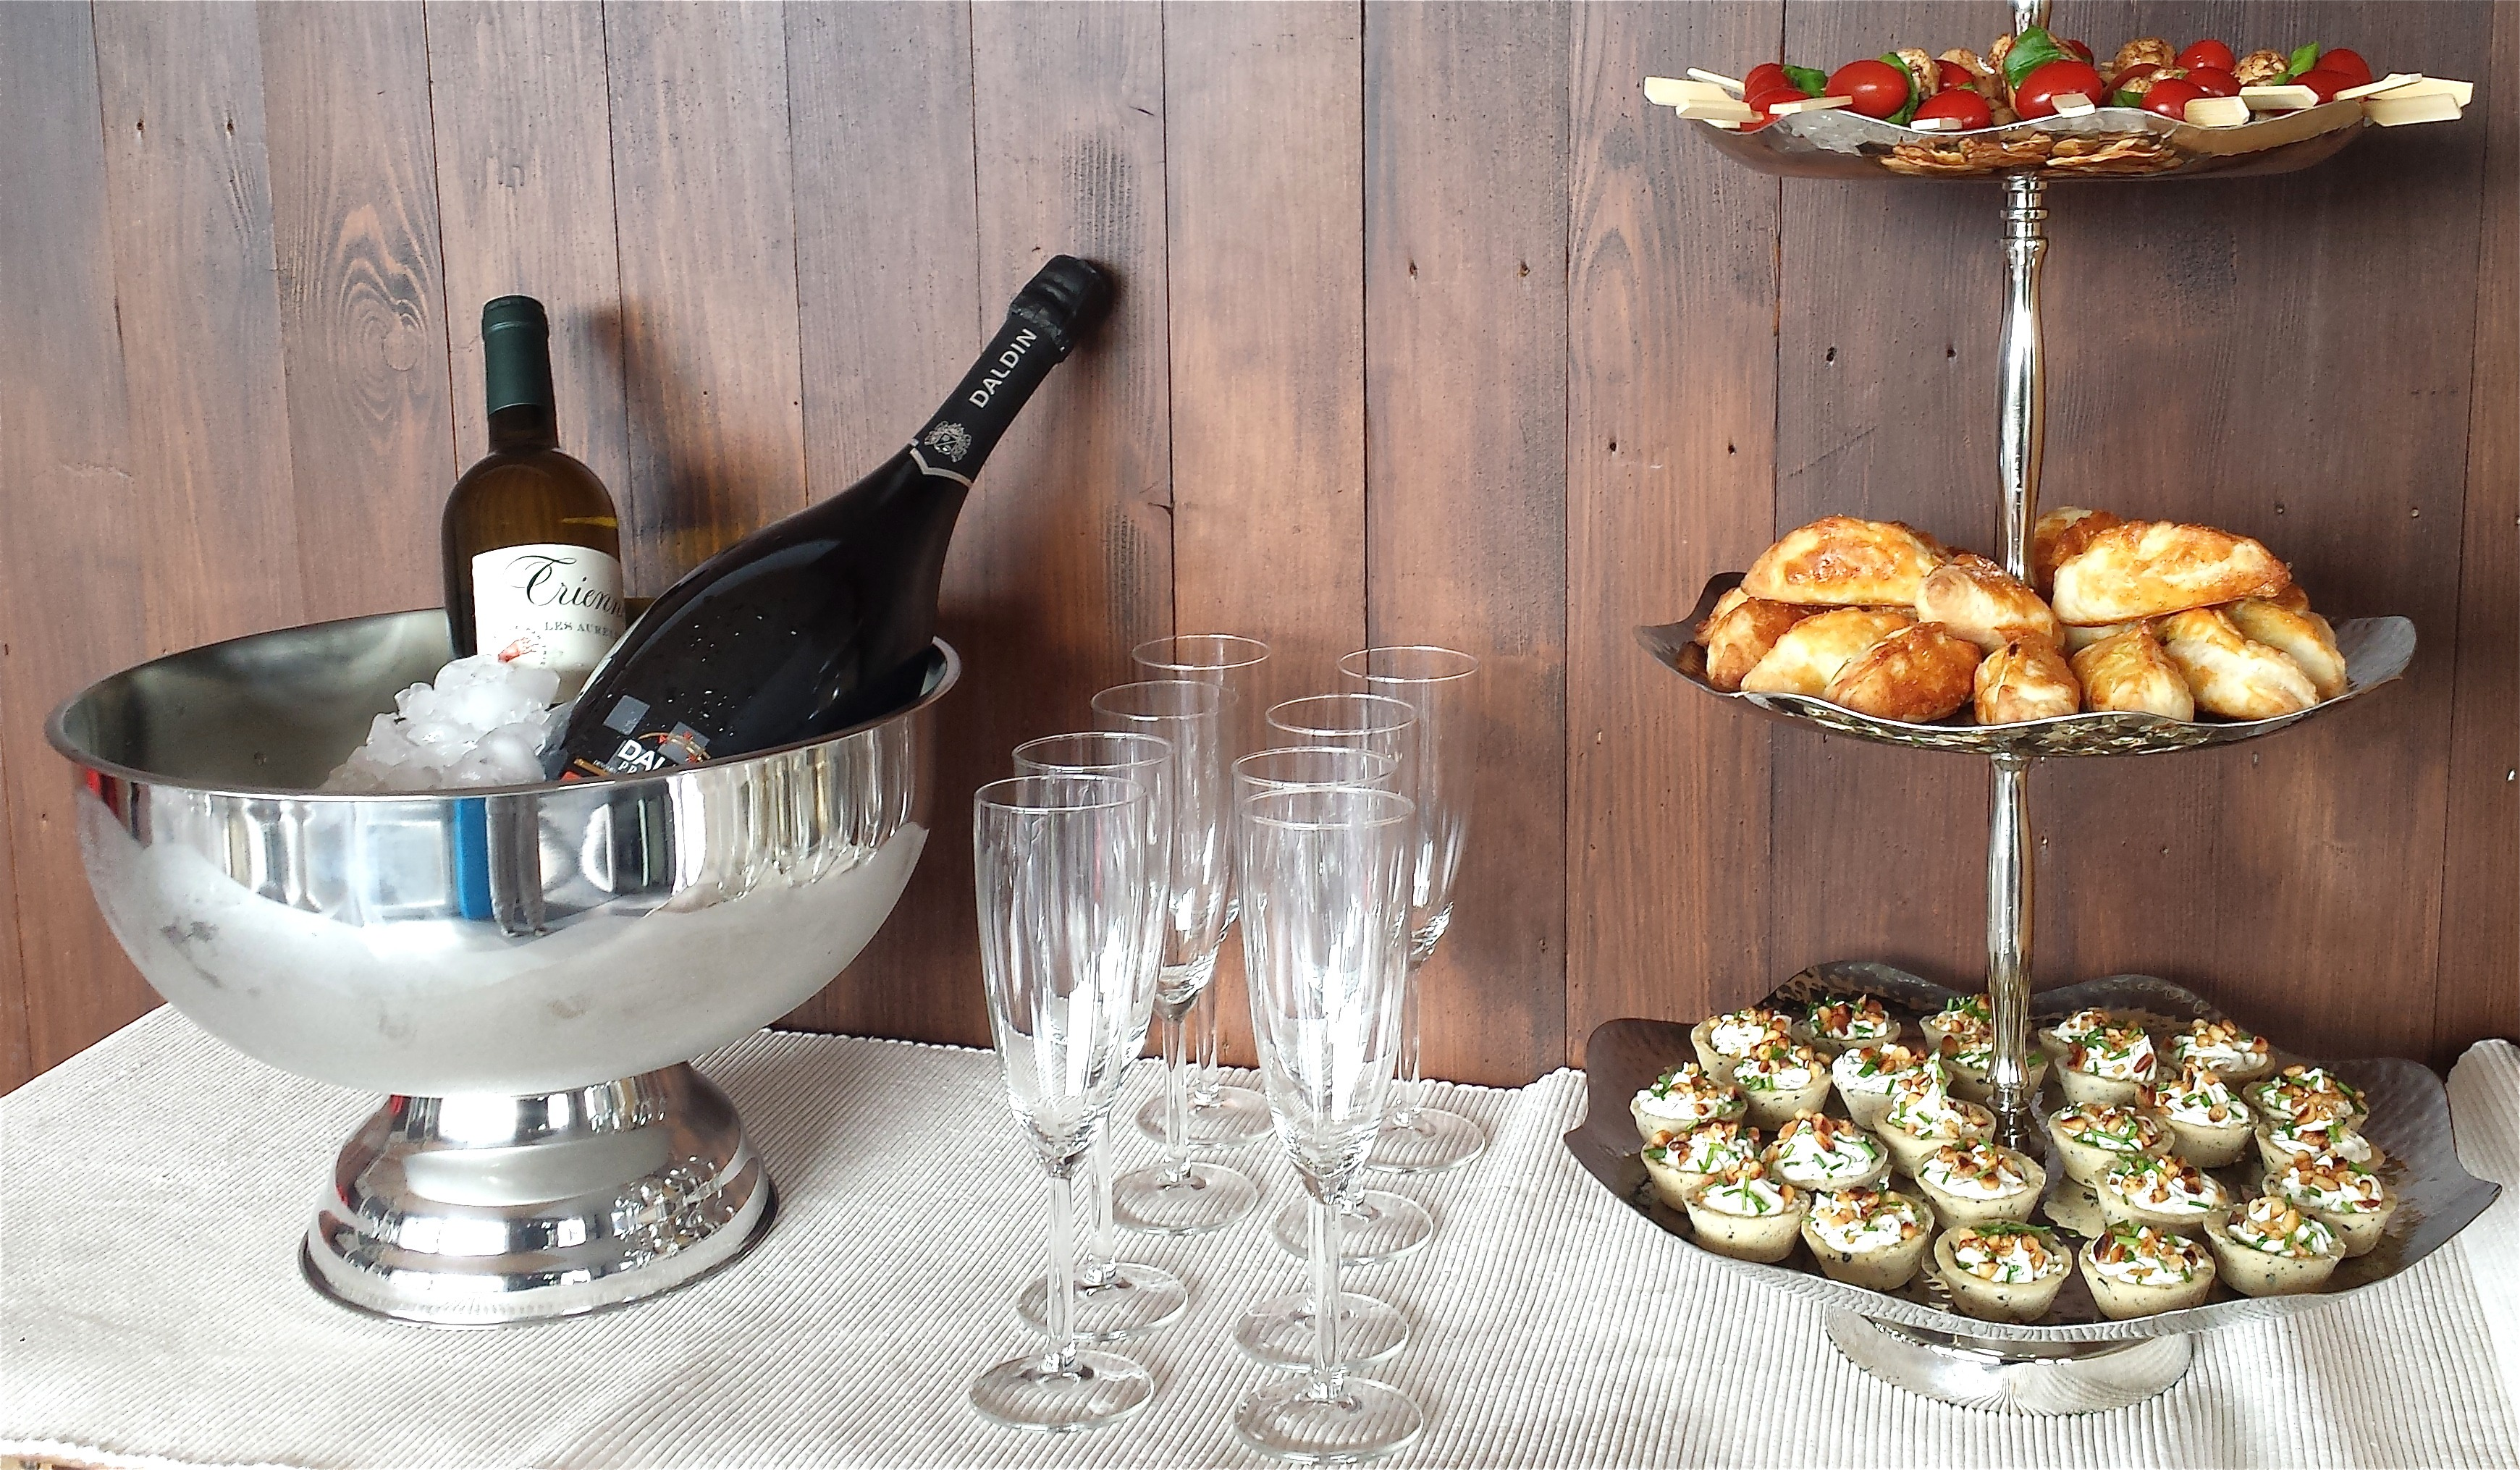 Catering Basel, Millefeuille-Catering, Partyservice, Apéro riche, Chäsfondue, Fondue Chinoise, Fondue Bourgignonne